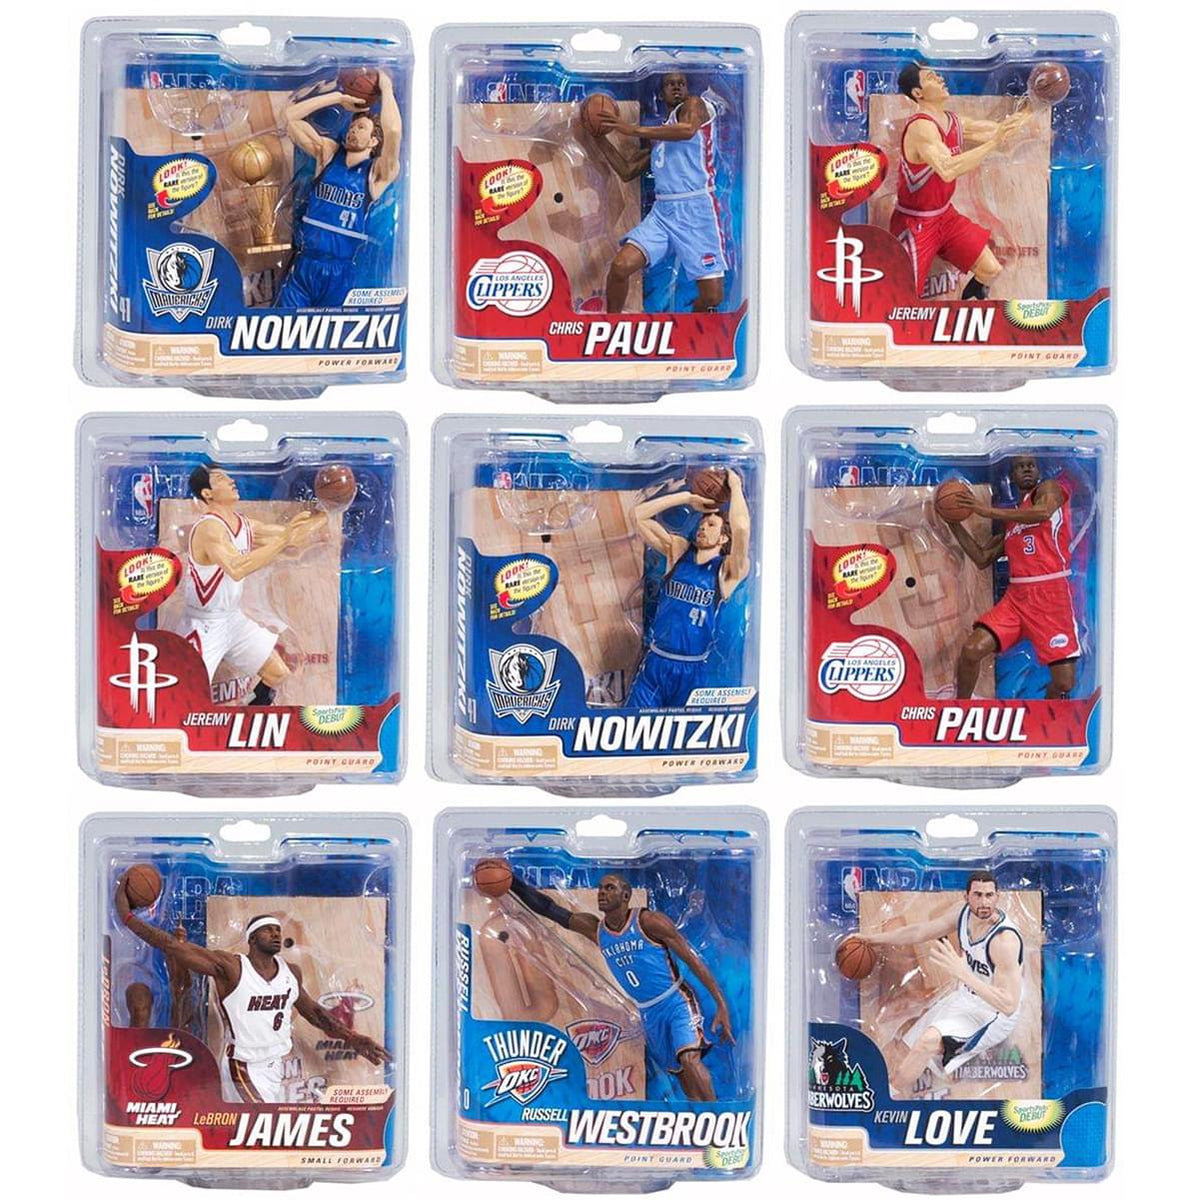 McFarlane NBA Series 21 Action Figures | Assorted Sealed Case of 8 Figures